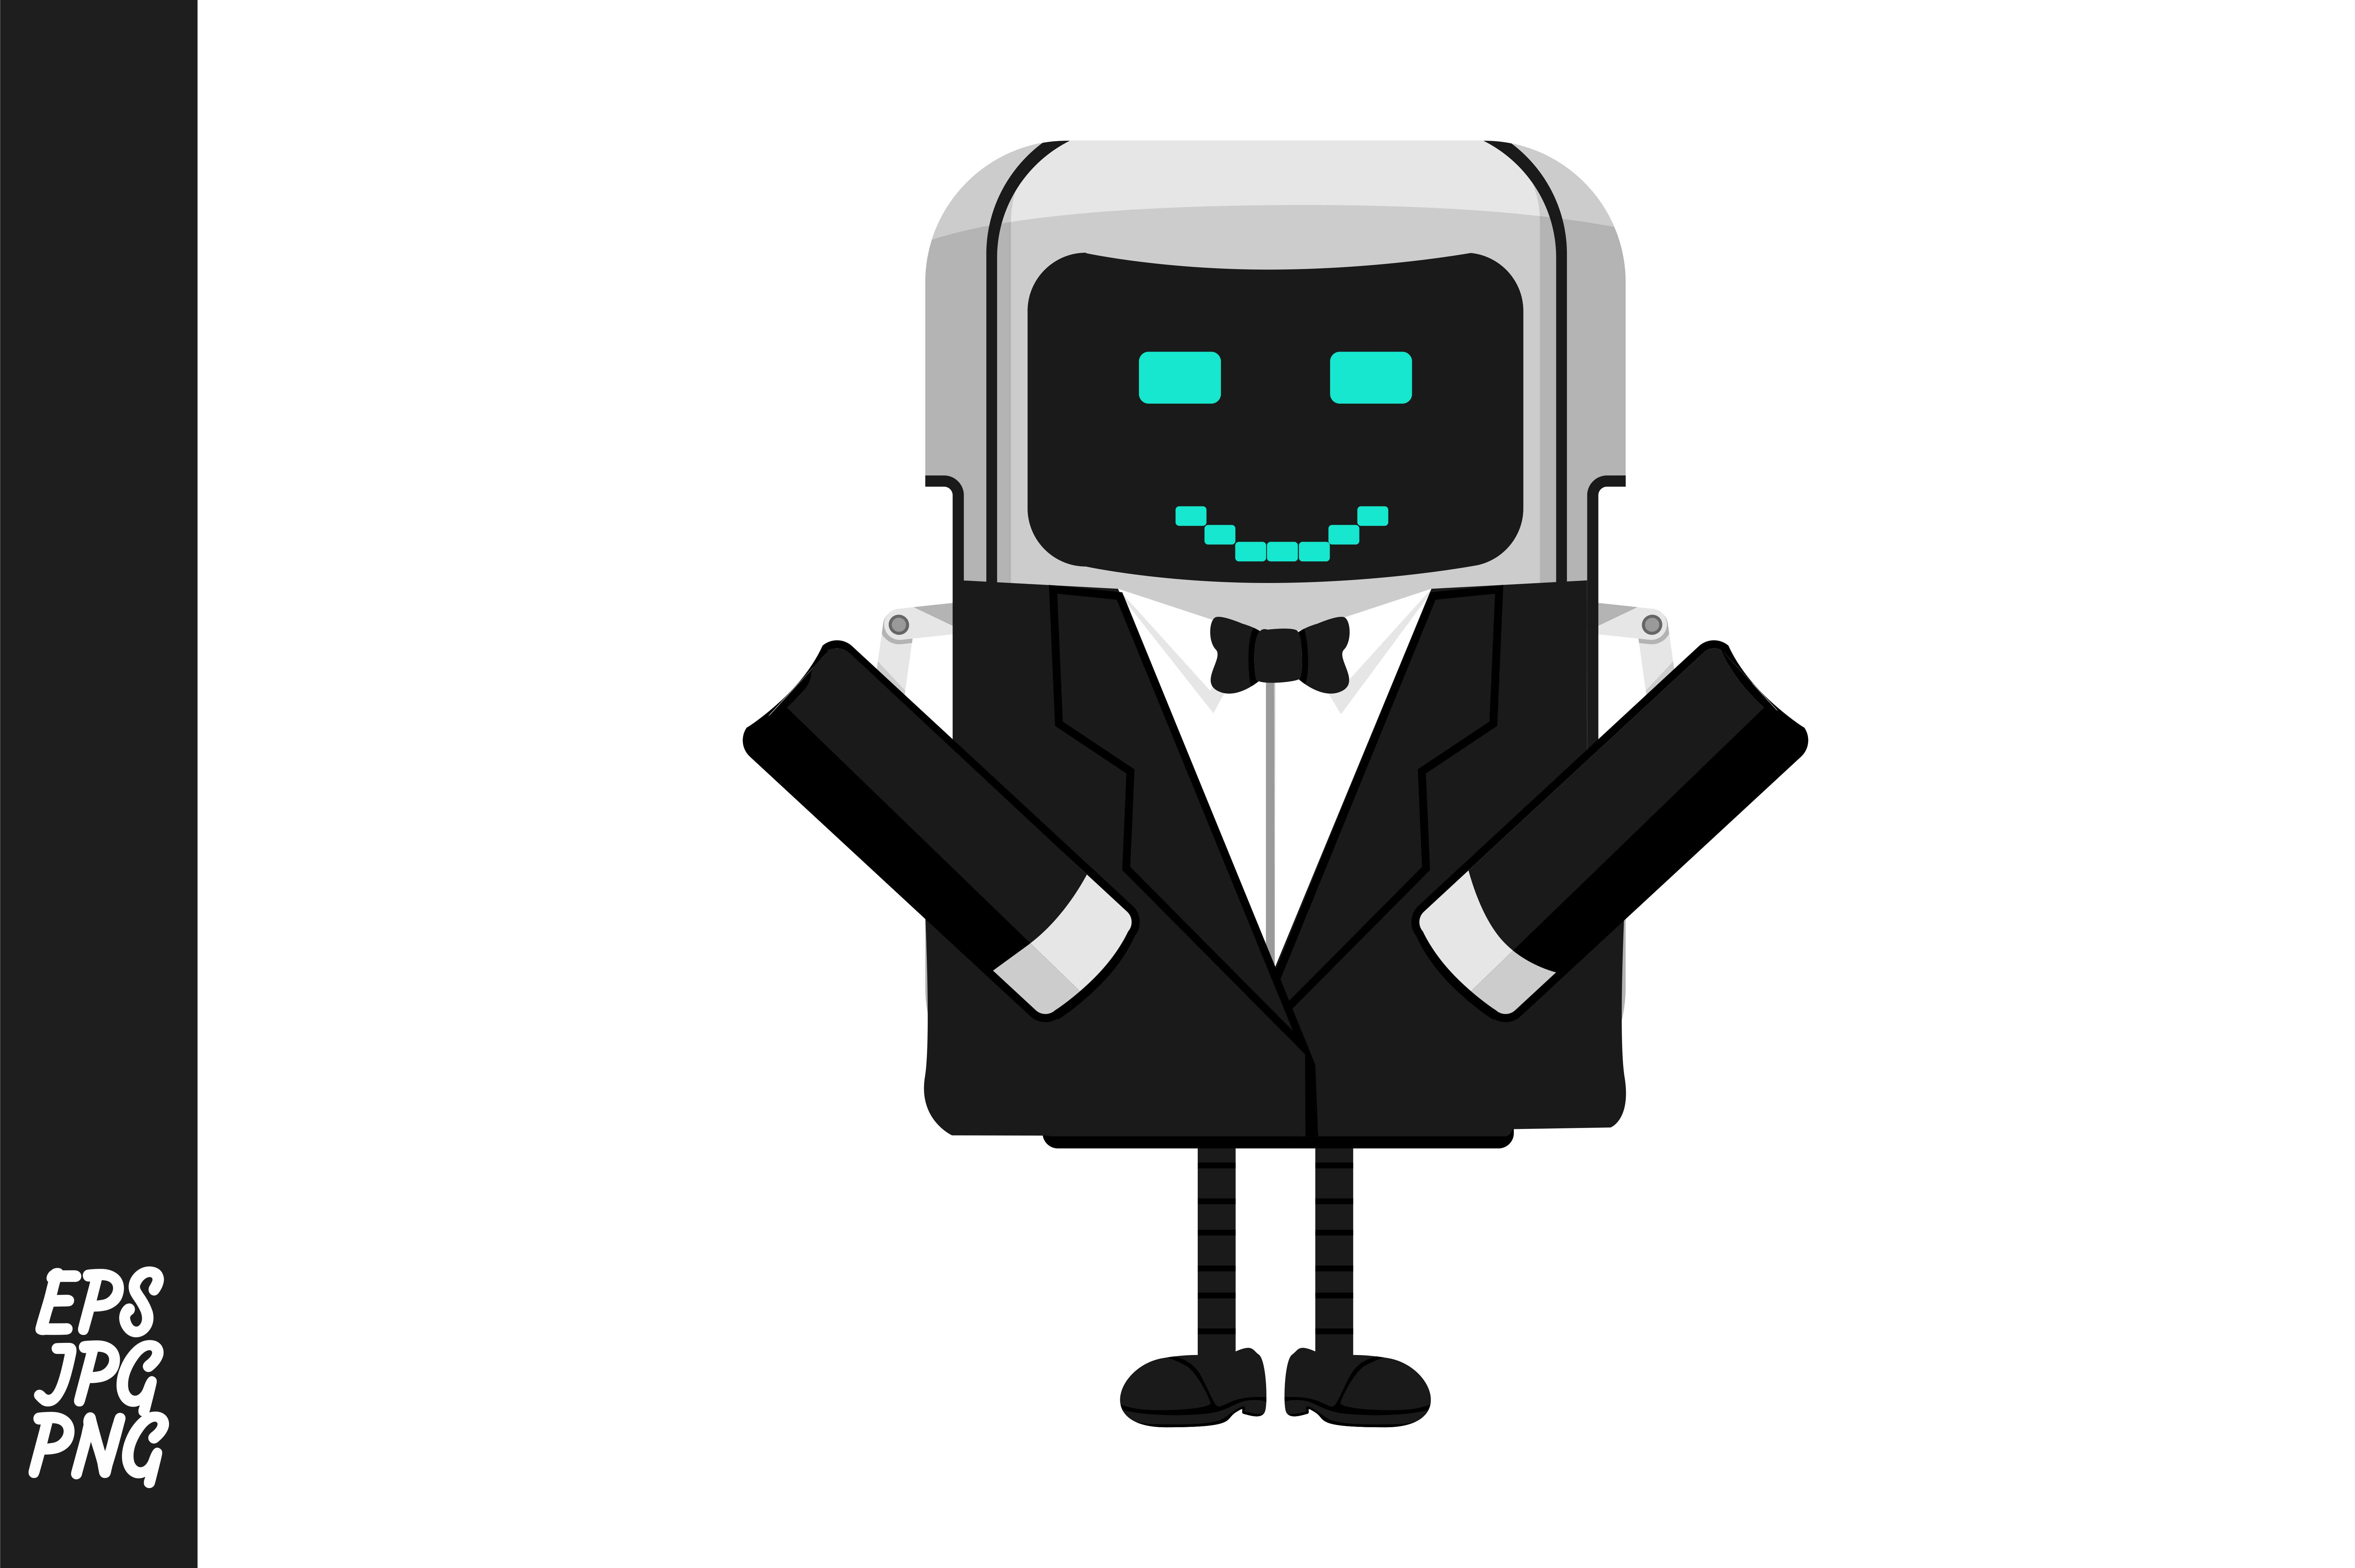 Cute Cartoon Robot Butler Vector Graphic By Arief Sapta Adjie Creative Fabrica